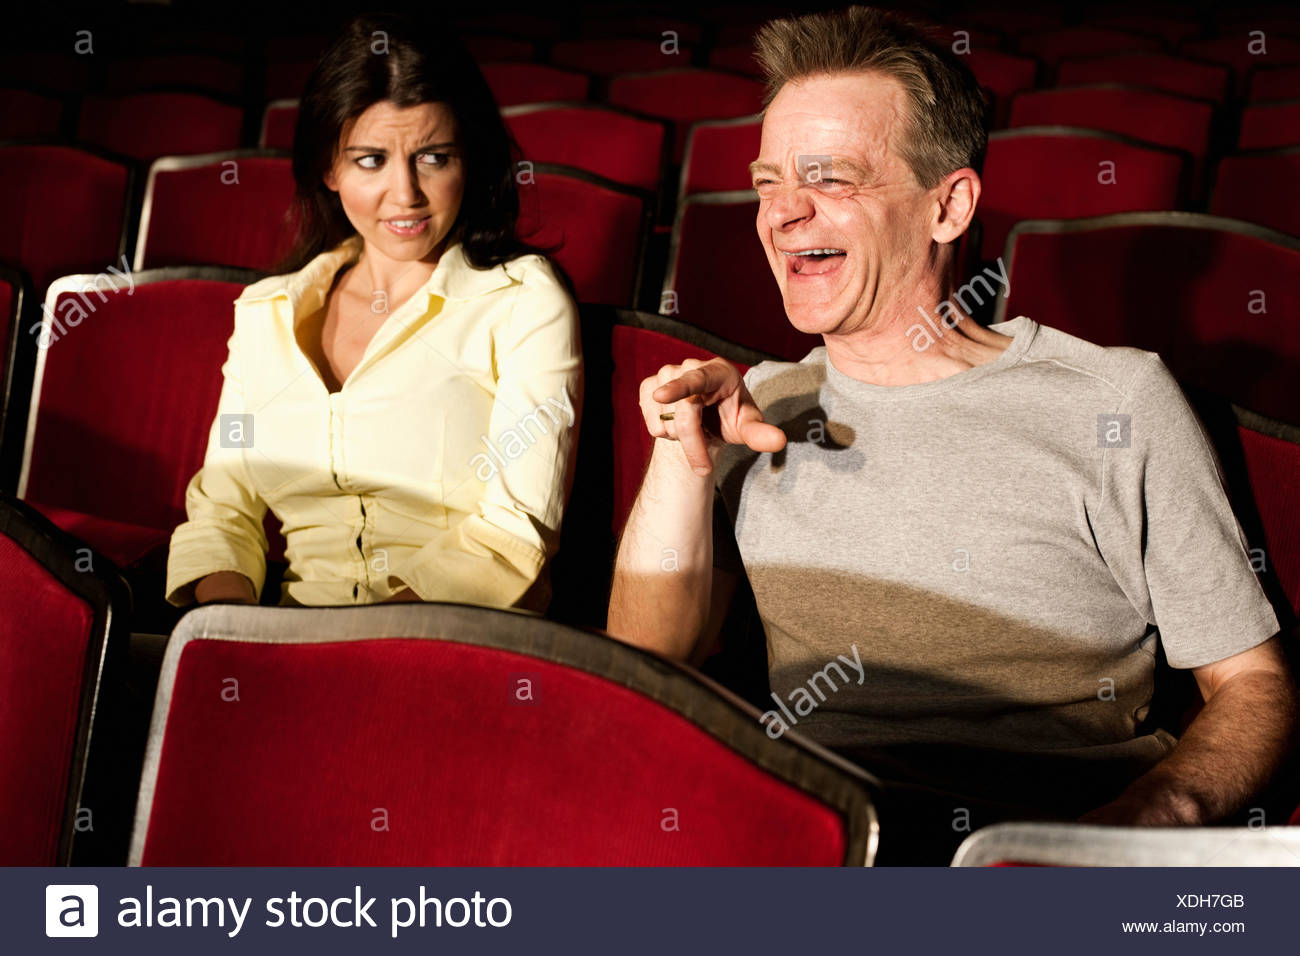 two spectators watching theatre play young woman disgusted by man´s behaviour - Stock Image